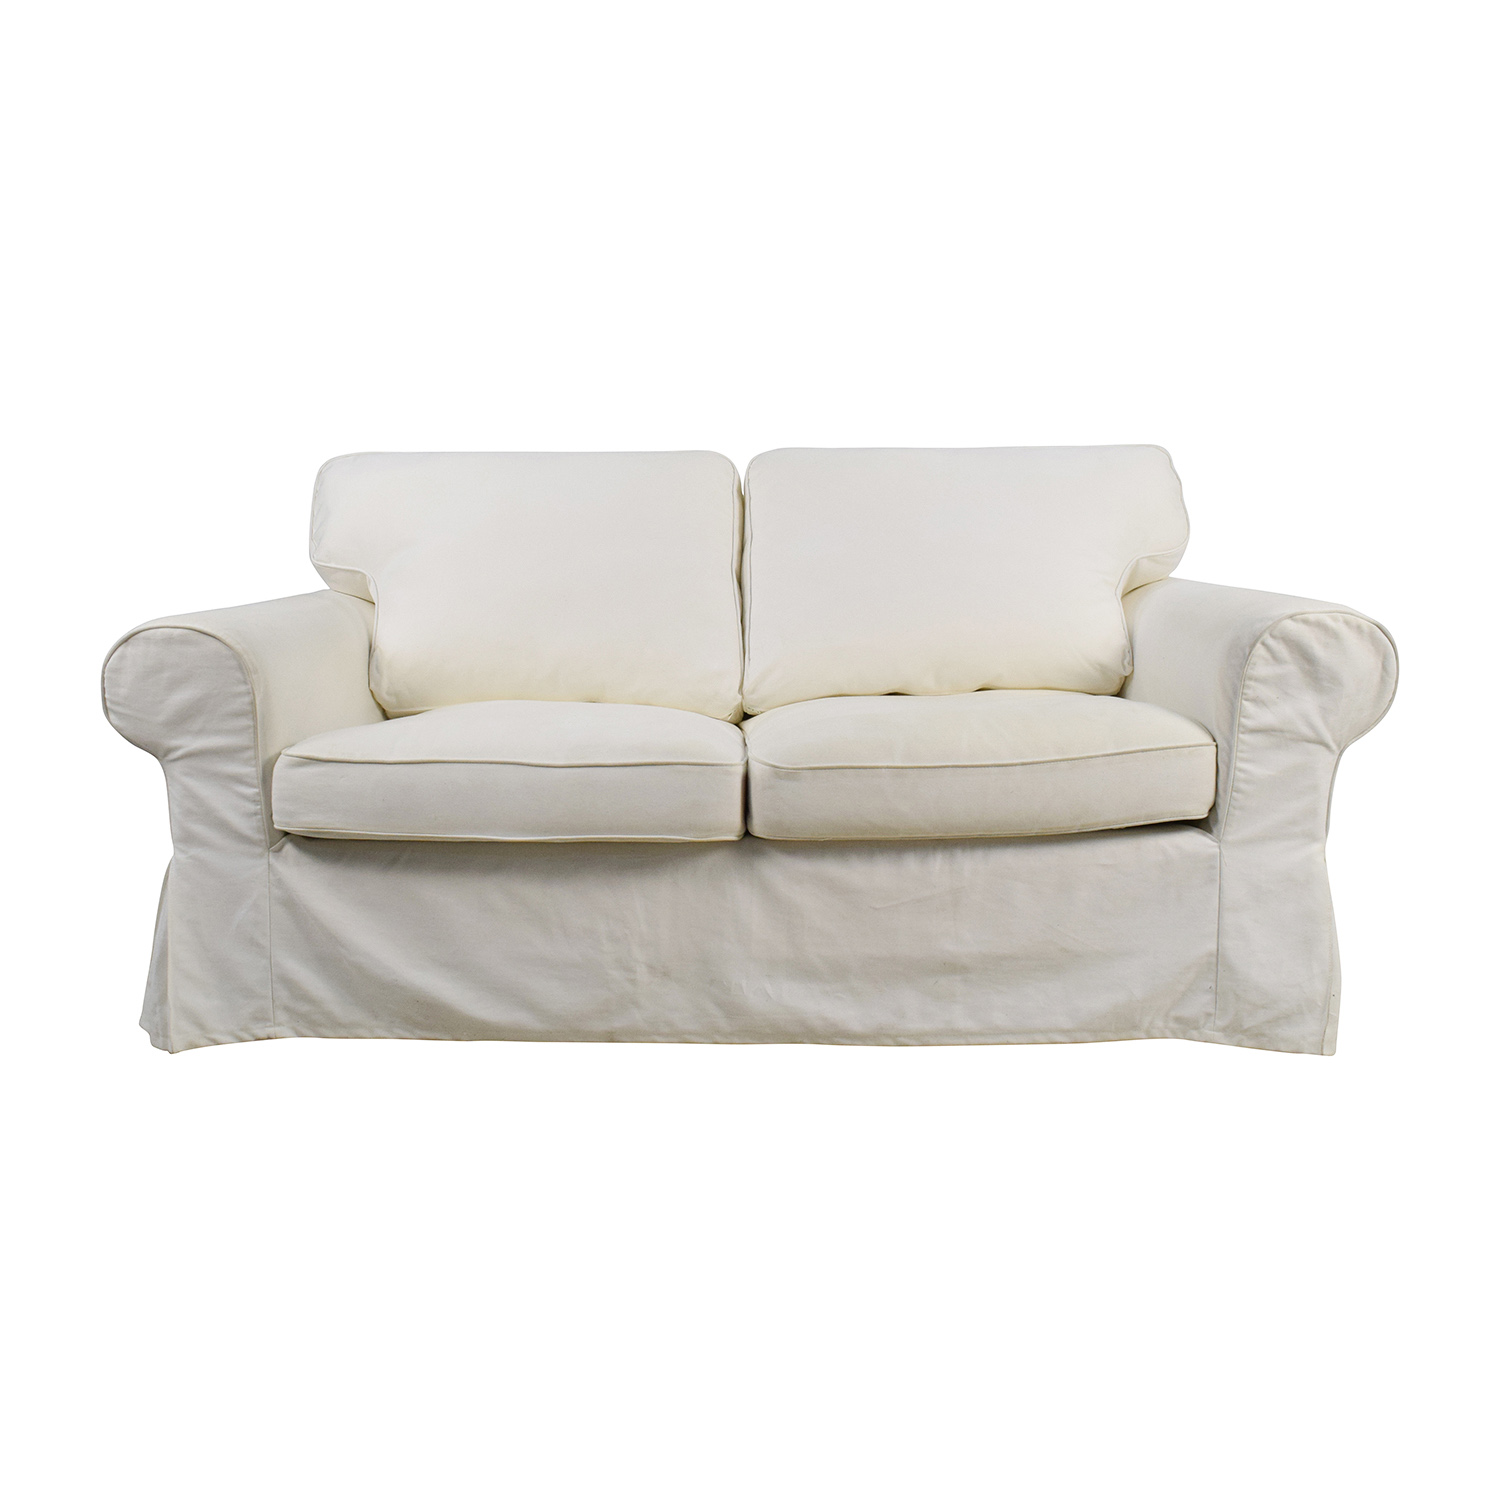 Ikea Furniture White Loveseat Sofa Good White Sofa And Loveseat 61 About